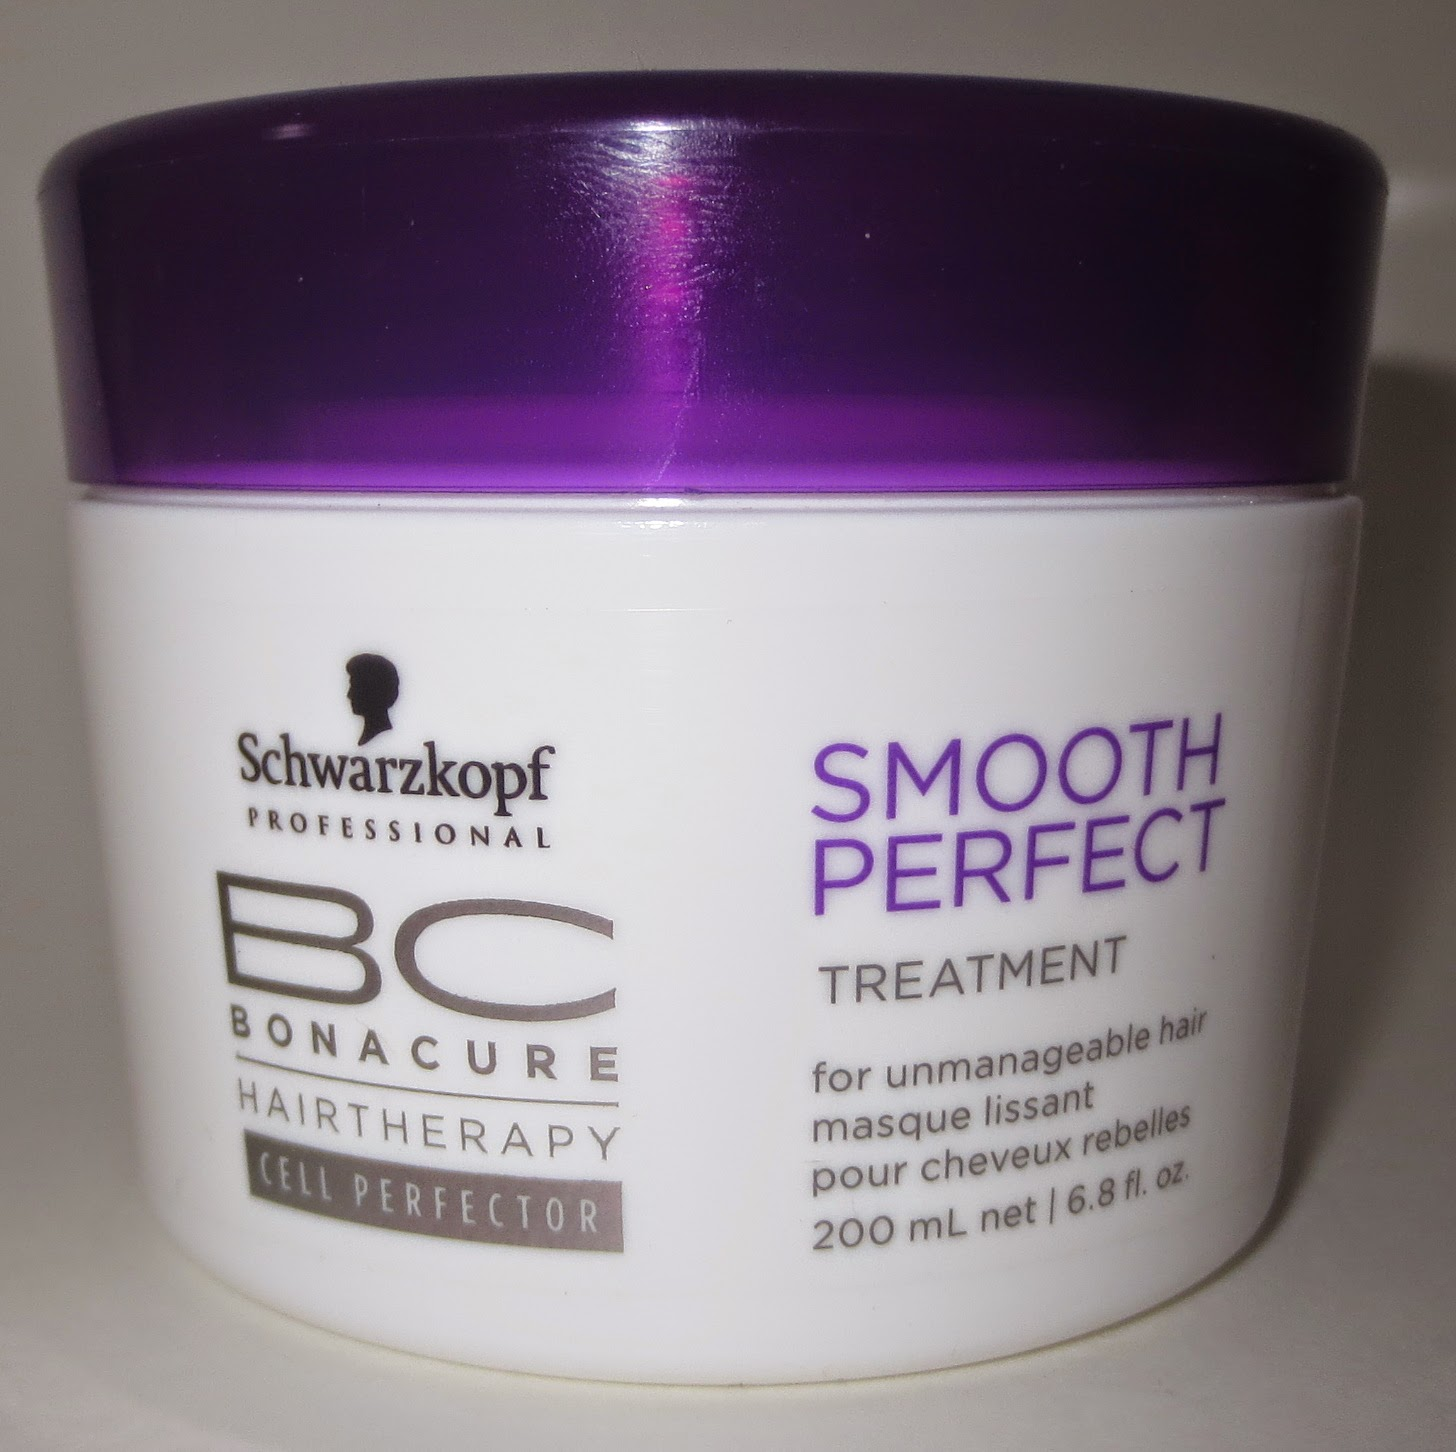 Schwarzkopf Professional BC HAIRTHERAPY Smooth Perfect Treatment Packaging